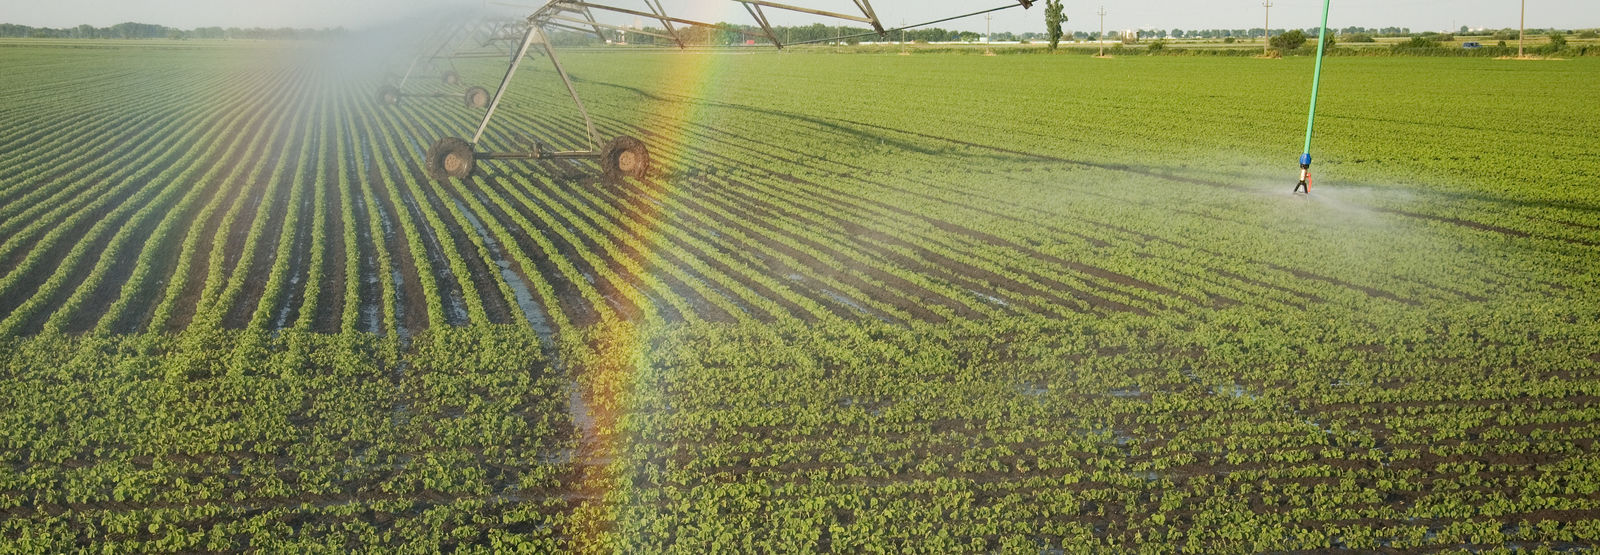 rainbow appears in mist while field of crops get sprayed